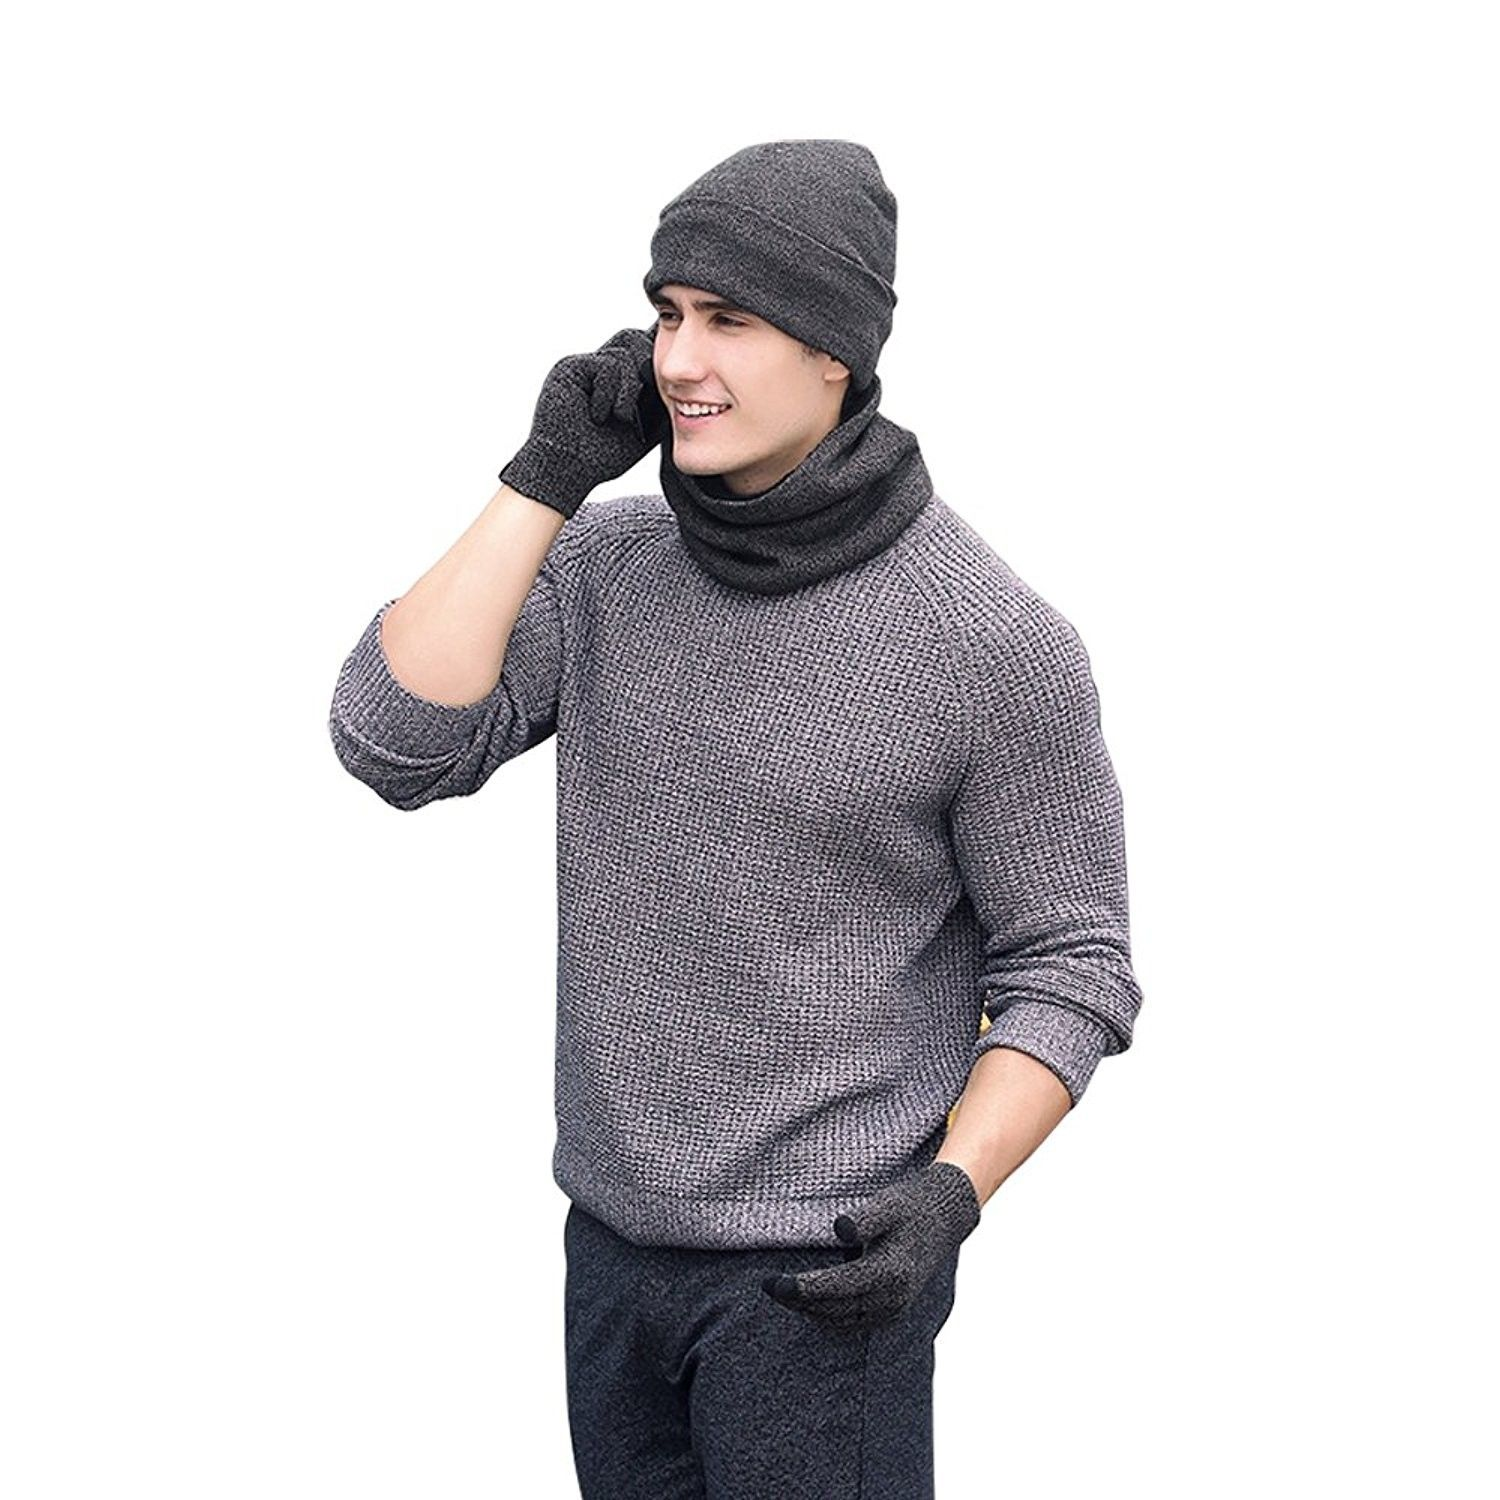 bb8fc195678 Winter Knitted Hat Scarf Gloves Three Sets for Men and Women-3 ...